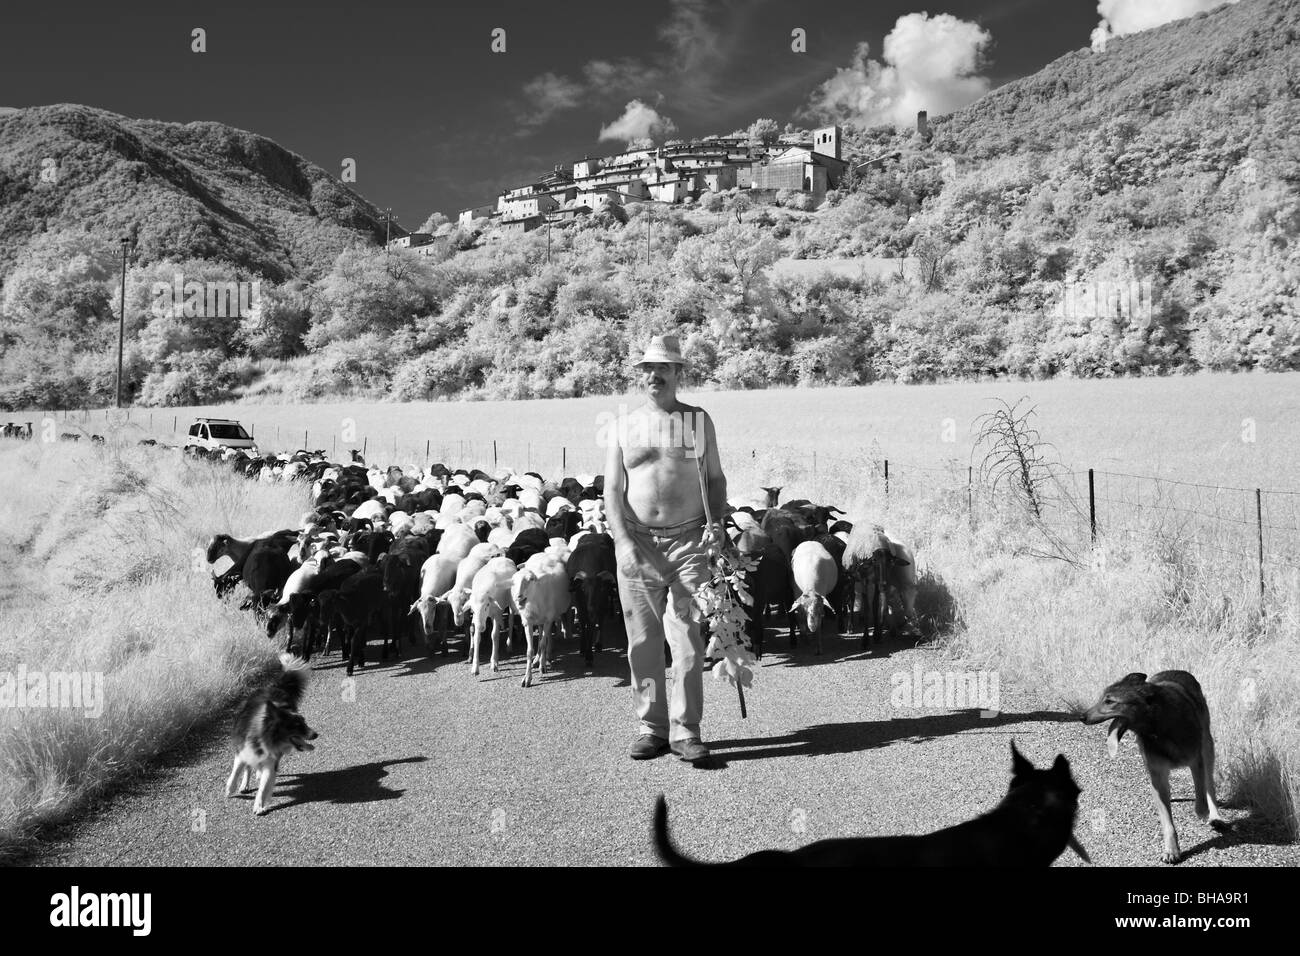 Santino, an Umbrian shepherd with his flock at Campi, Umbria, Italy - Stock Image